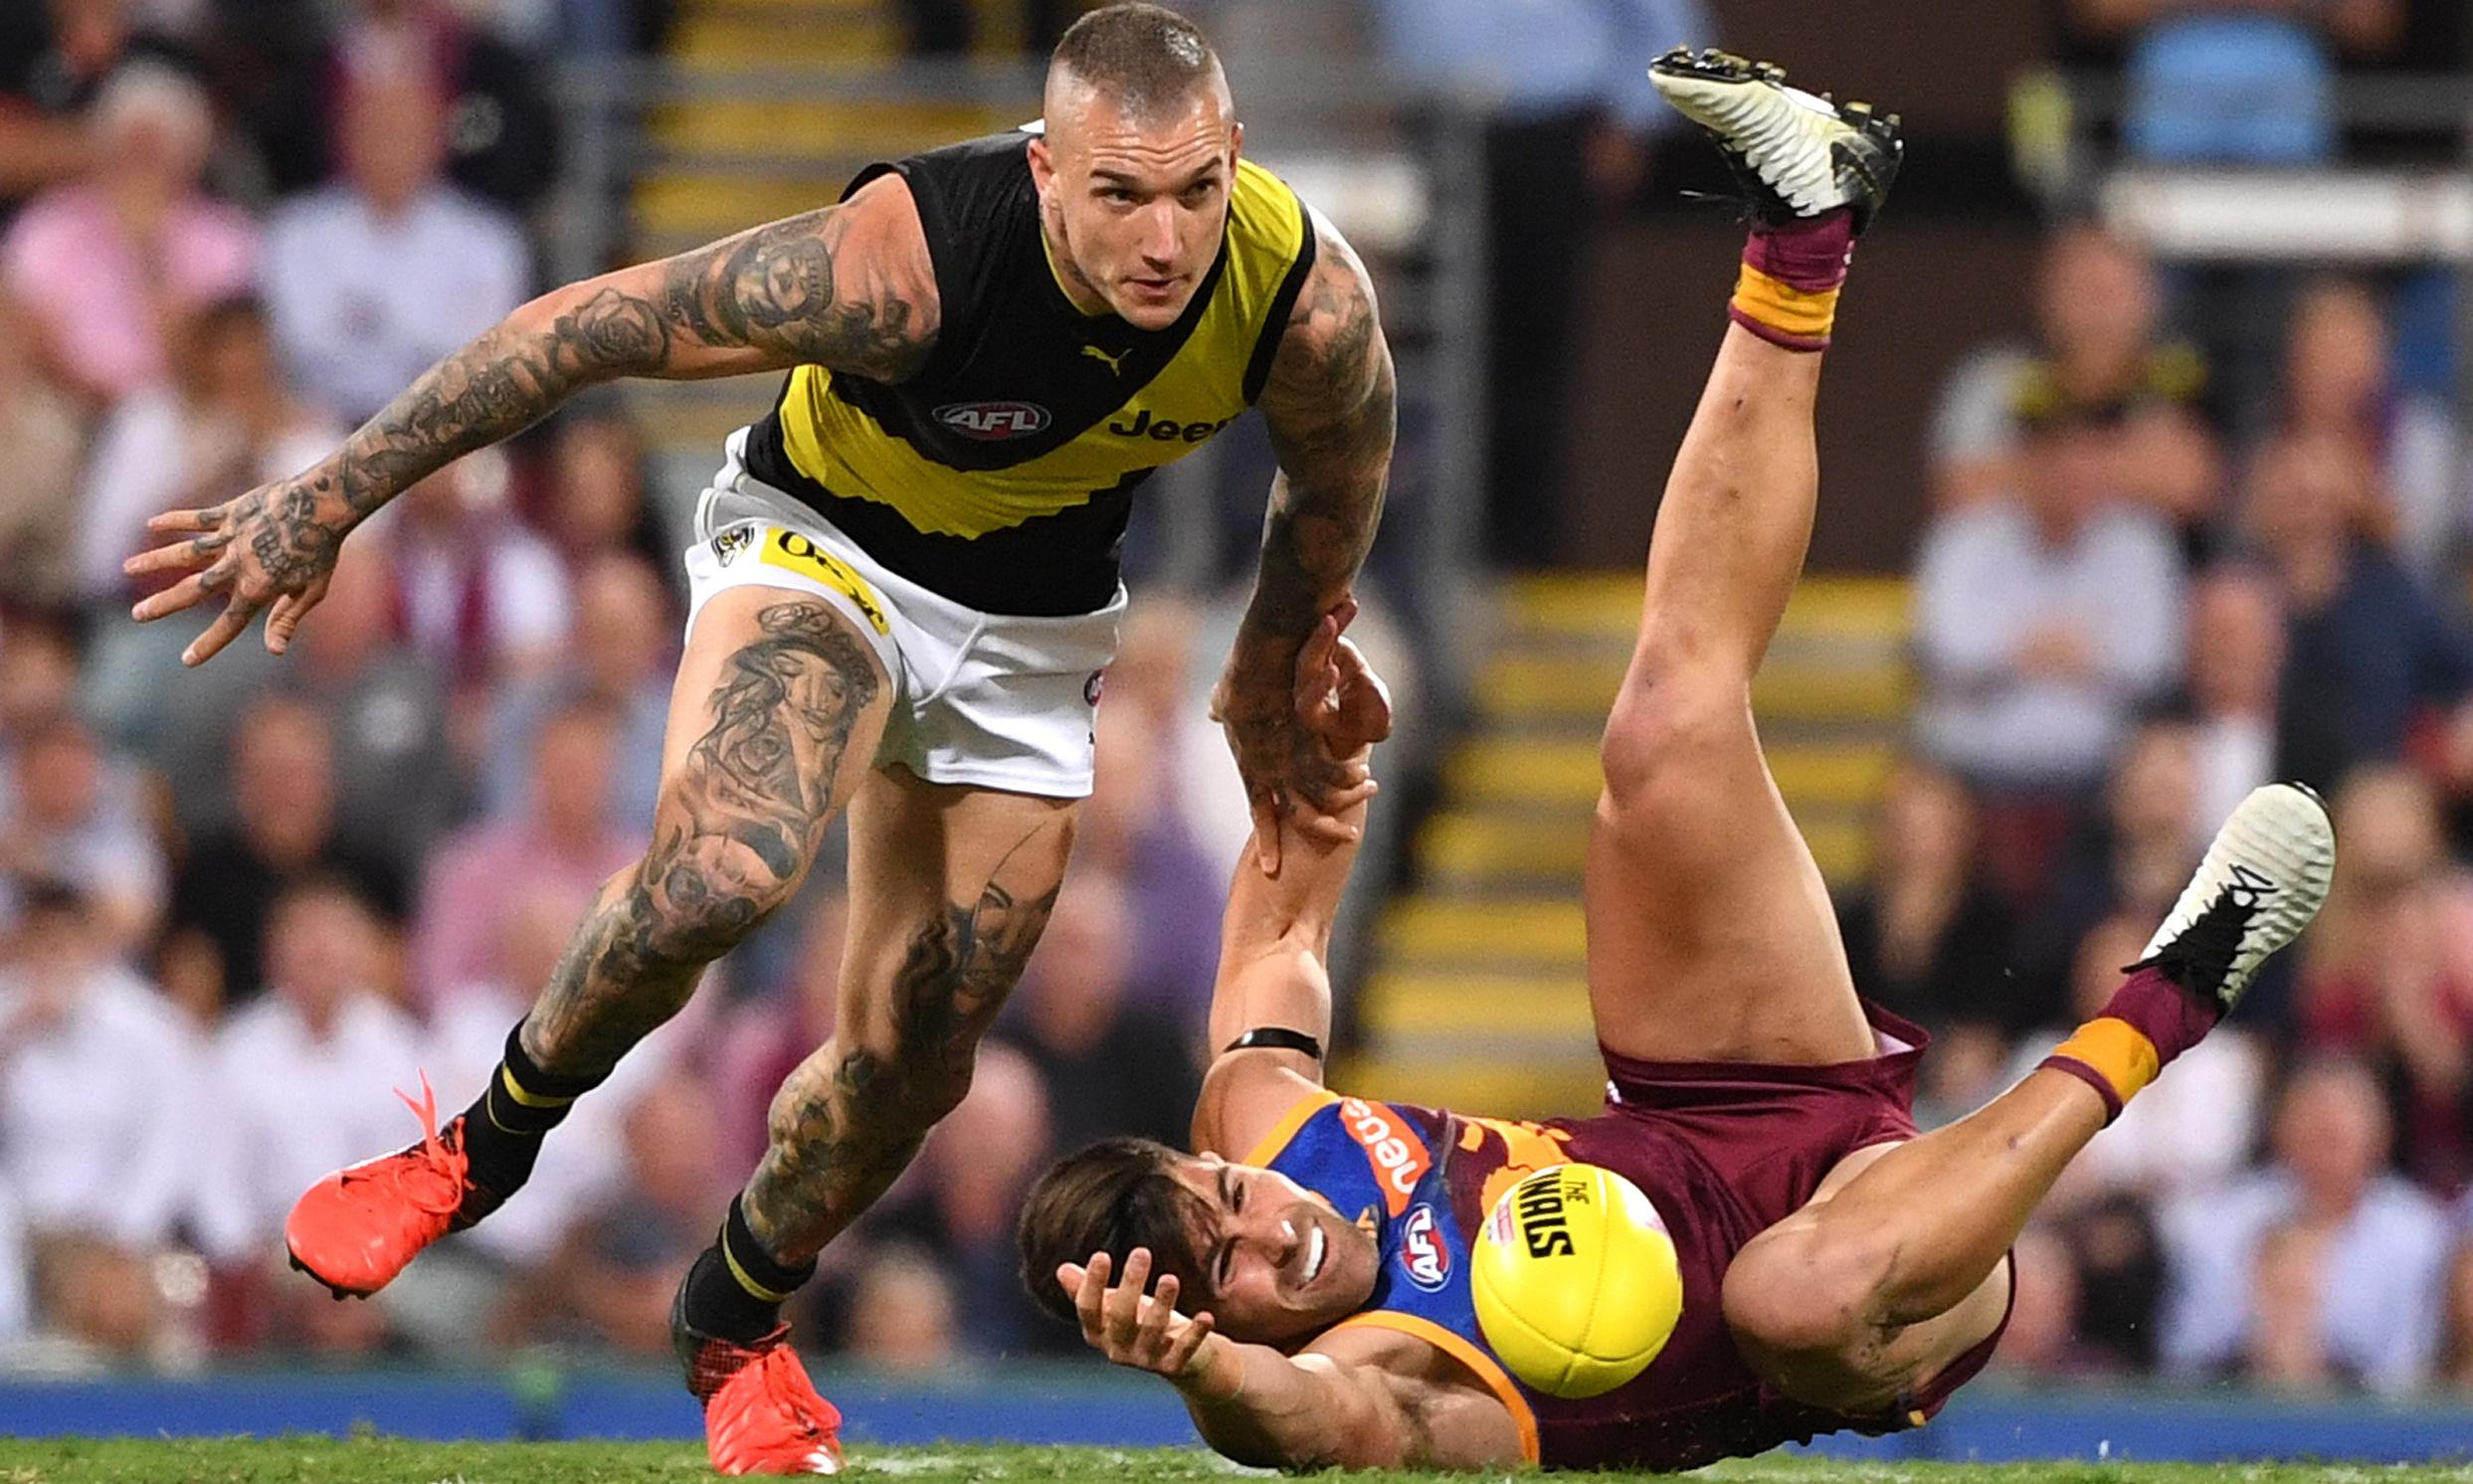 Dustin Martin dominates the opening round of AFL finals